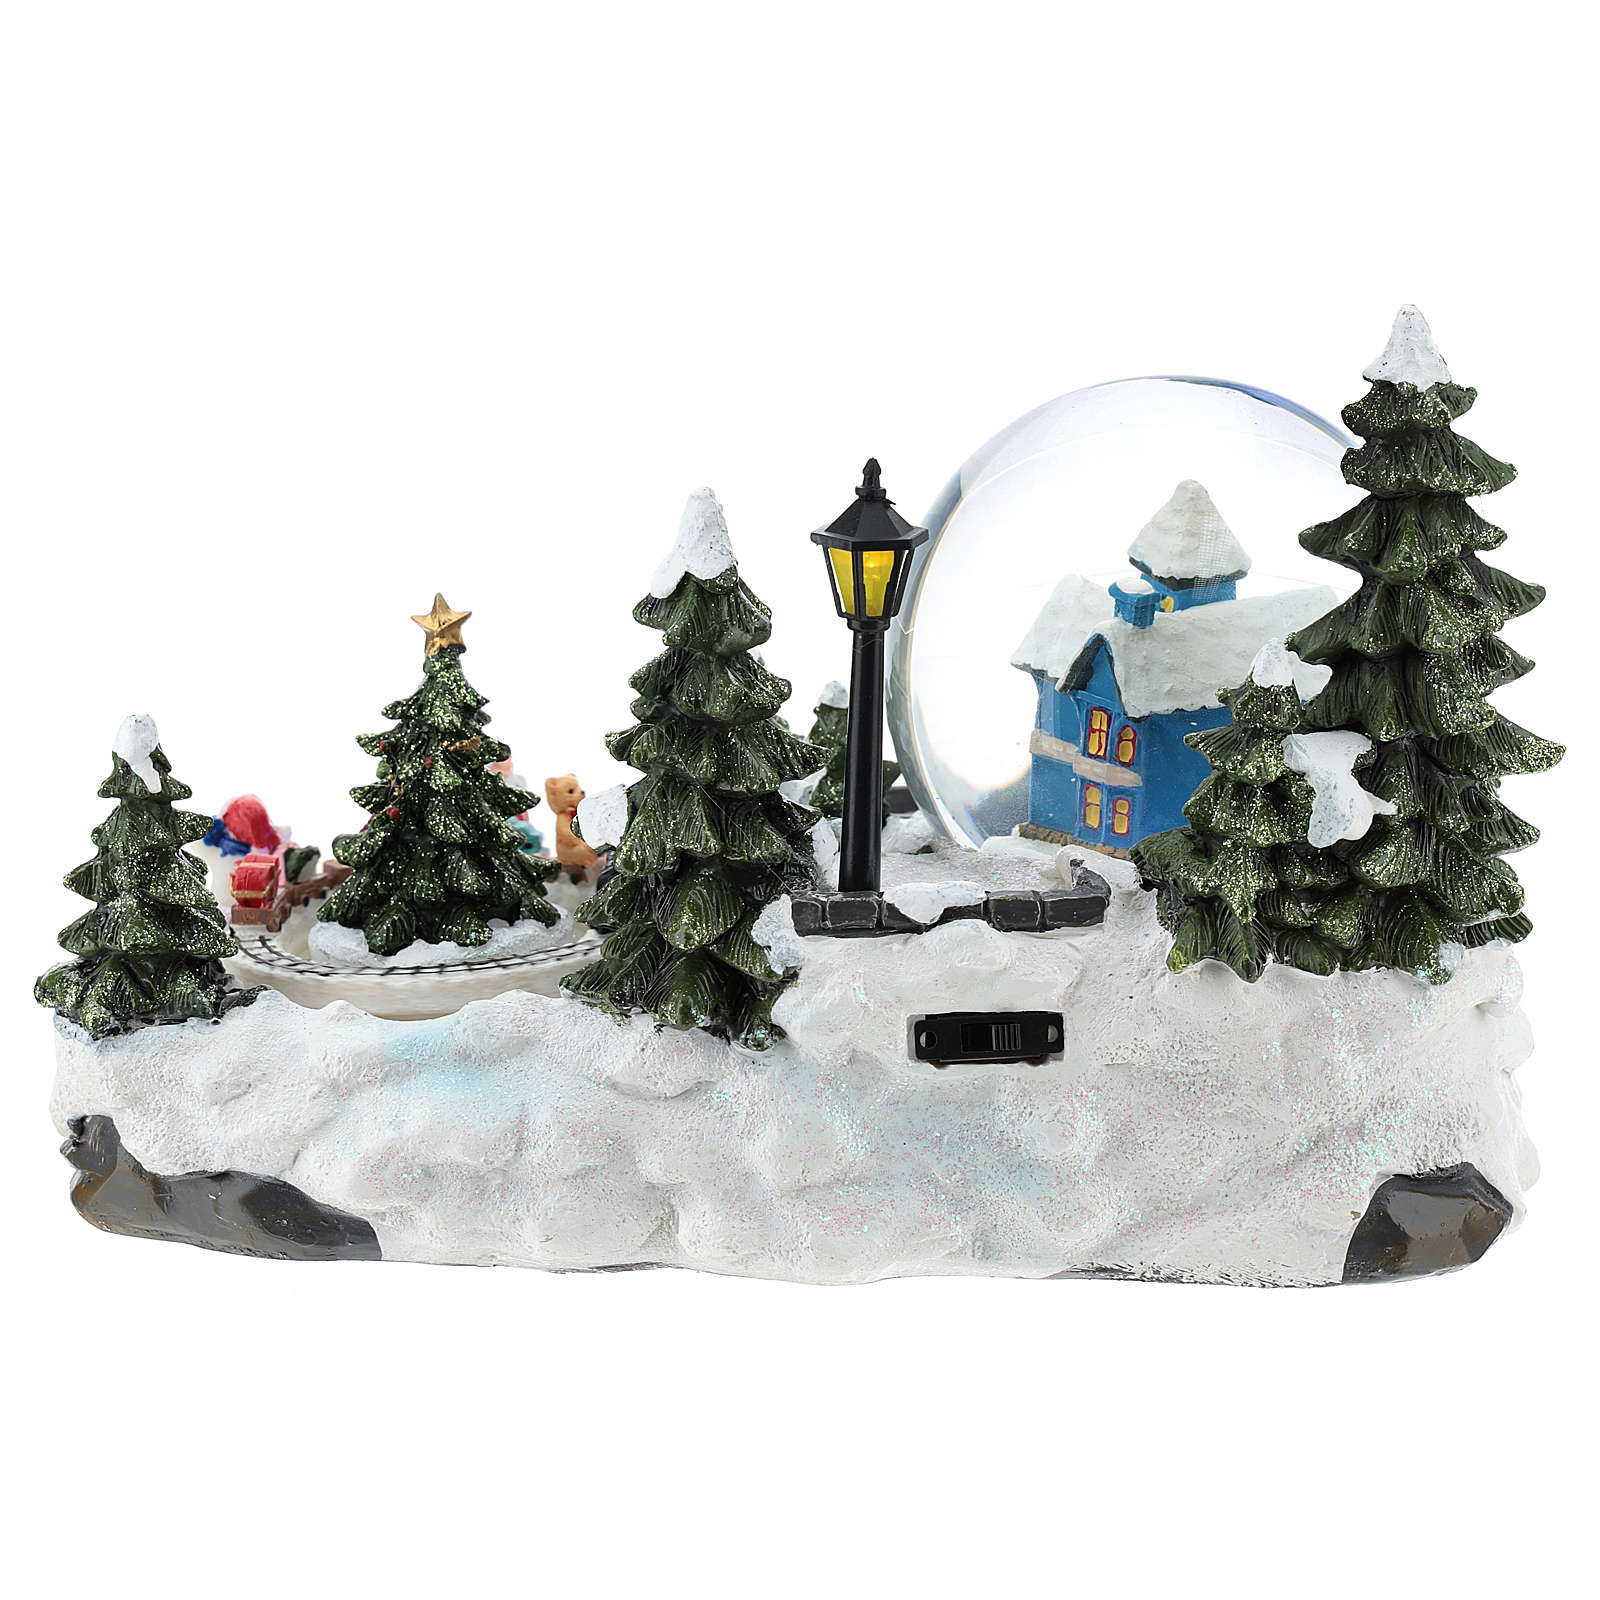 Christmas village with snow globe and train 15x25x15 cm 3